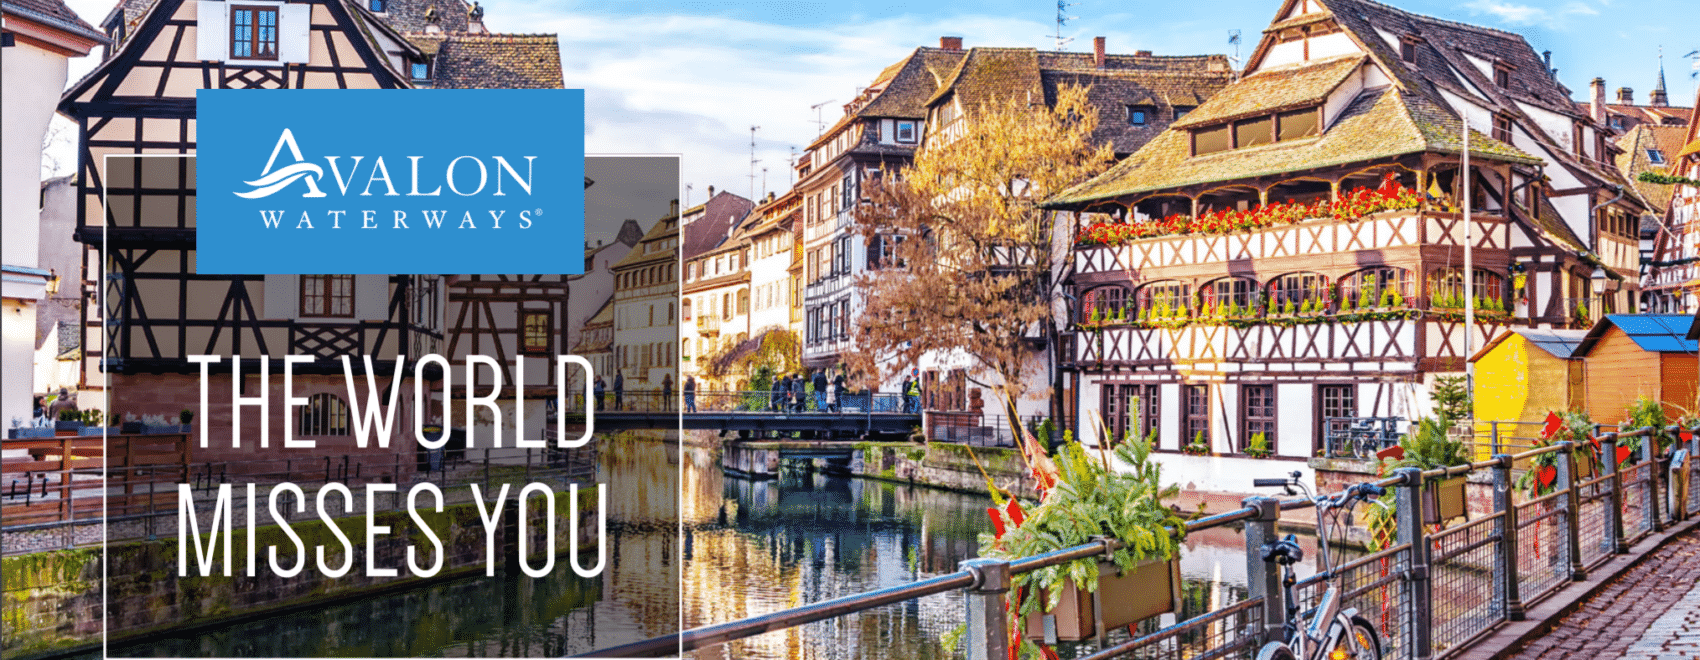 Avalon Waterways - The World Misses You